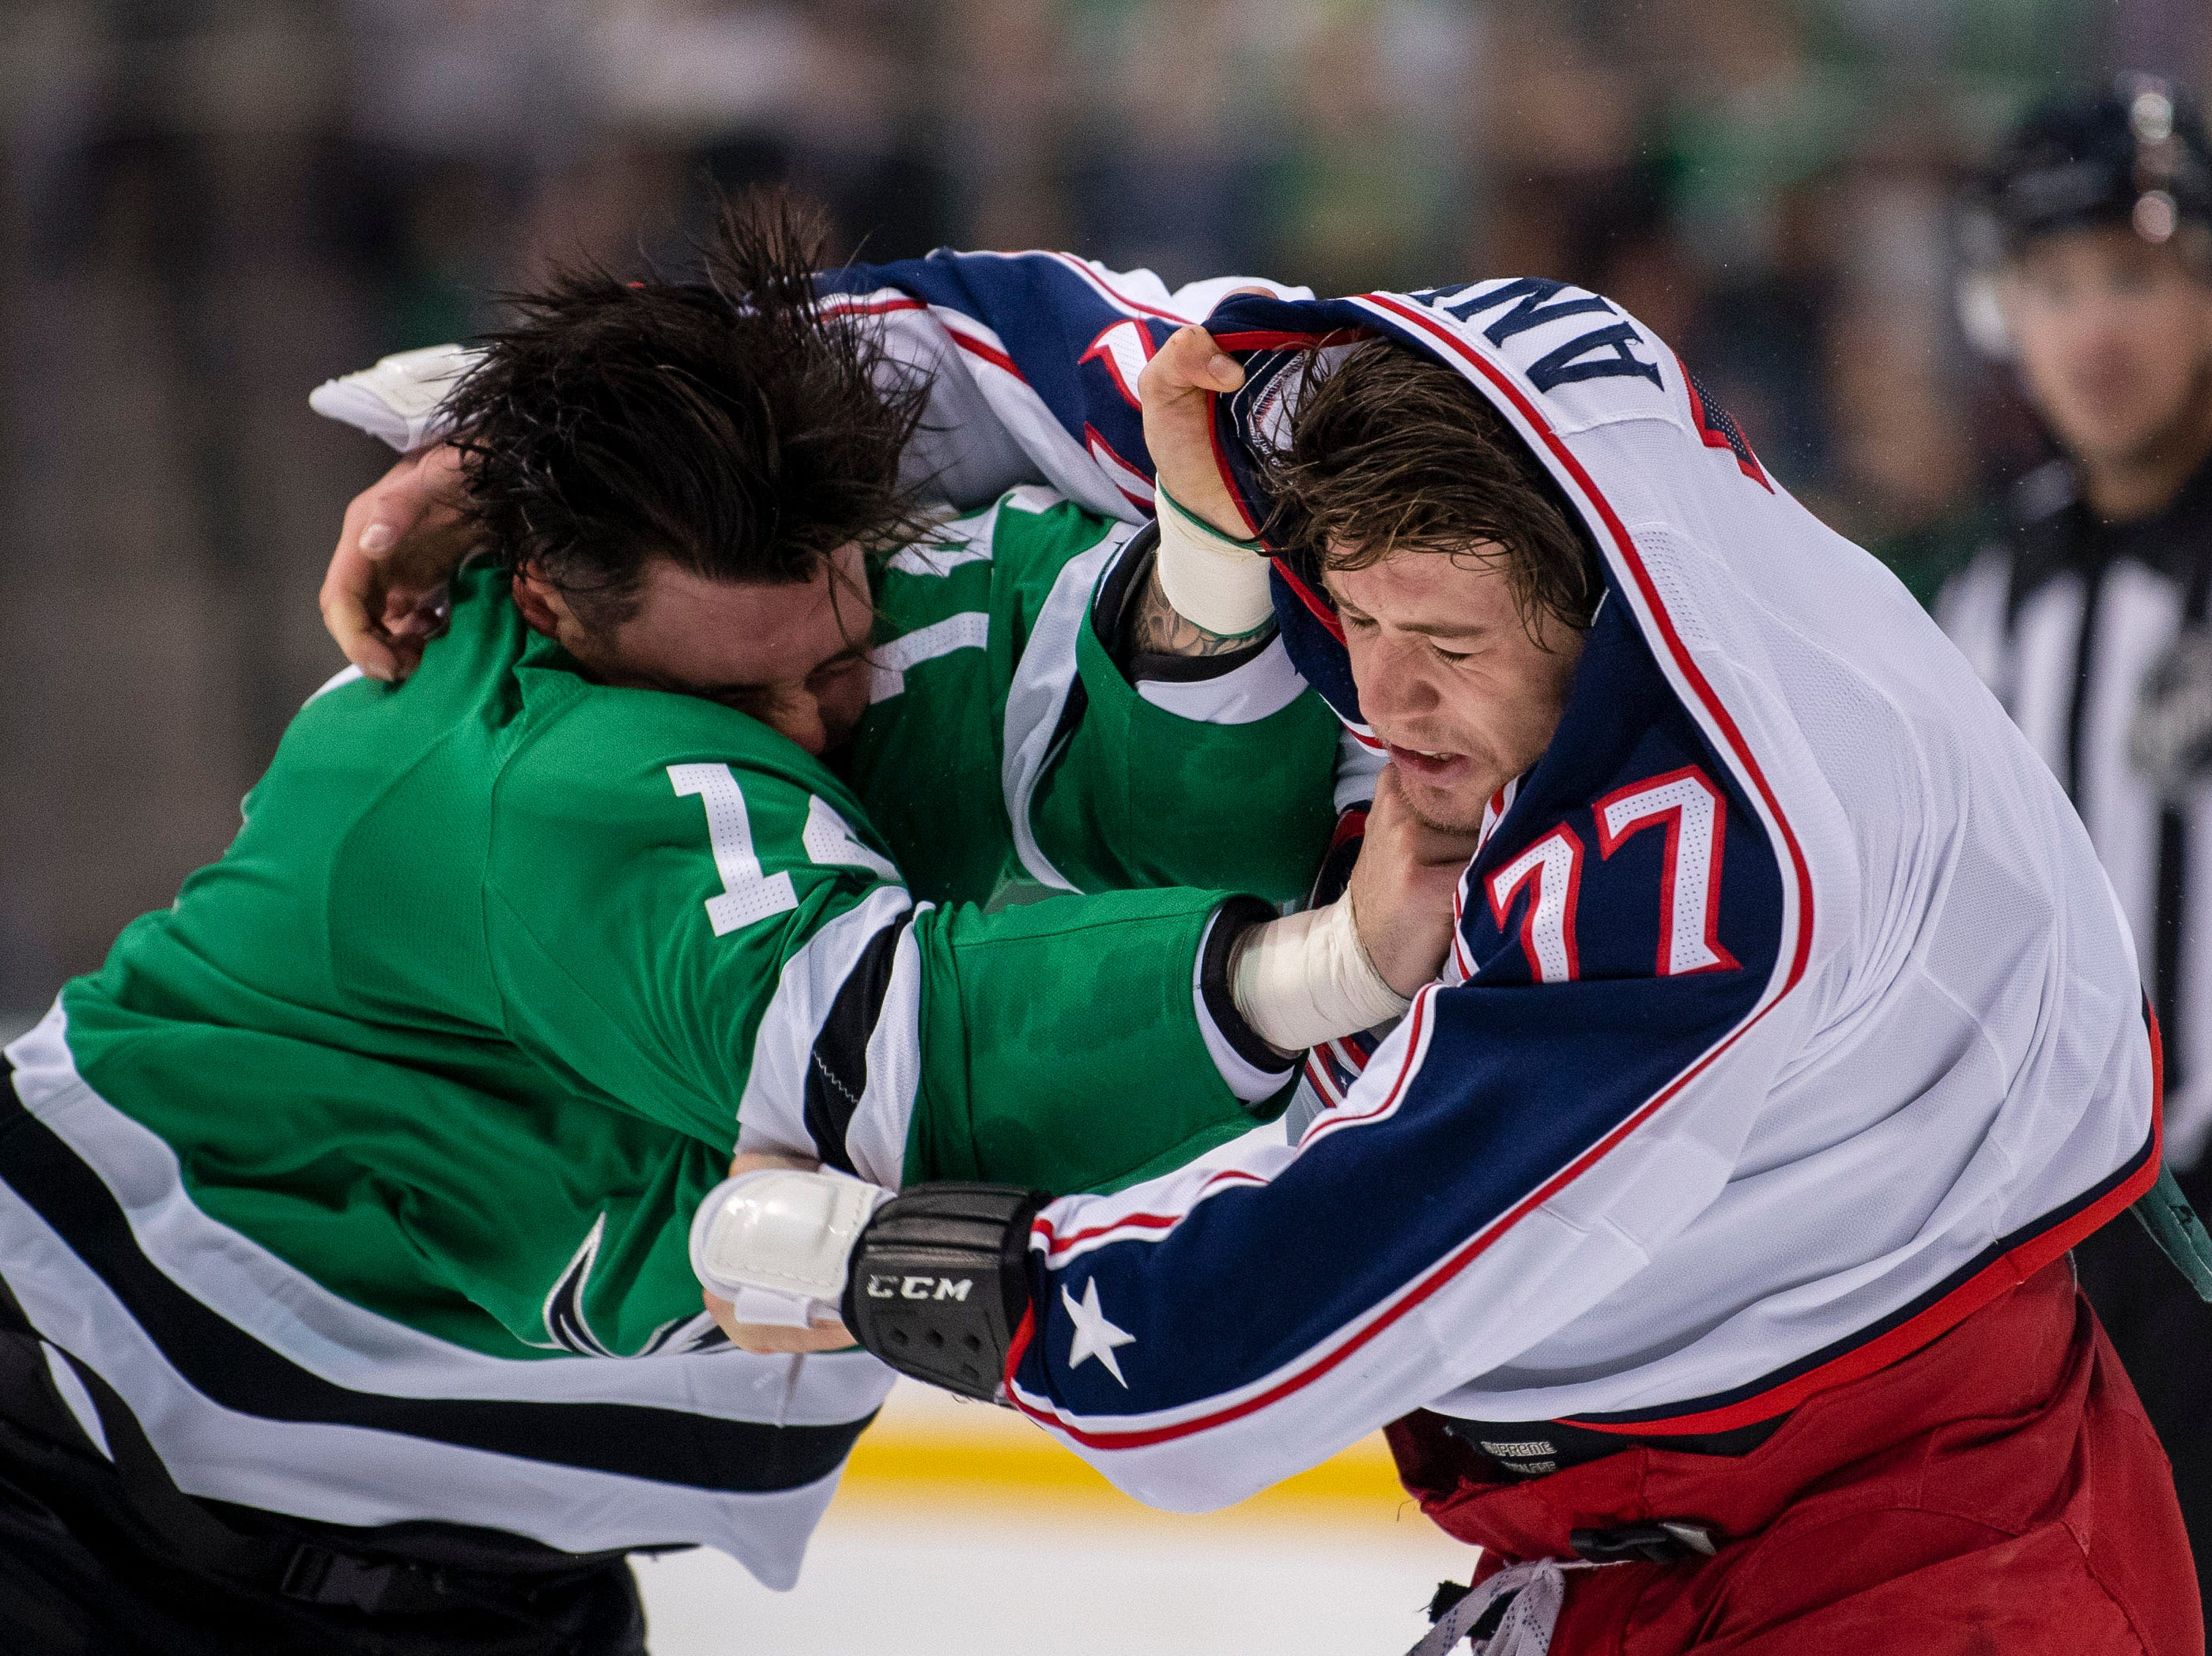 Nov. 12: Dallas Stars' Jamie Benn vs. Columbus Blue Jackets' Josh Anderson.